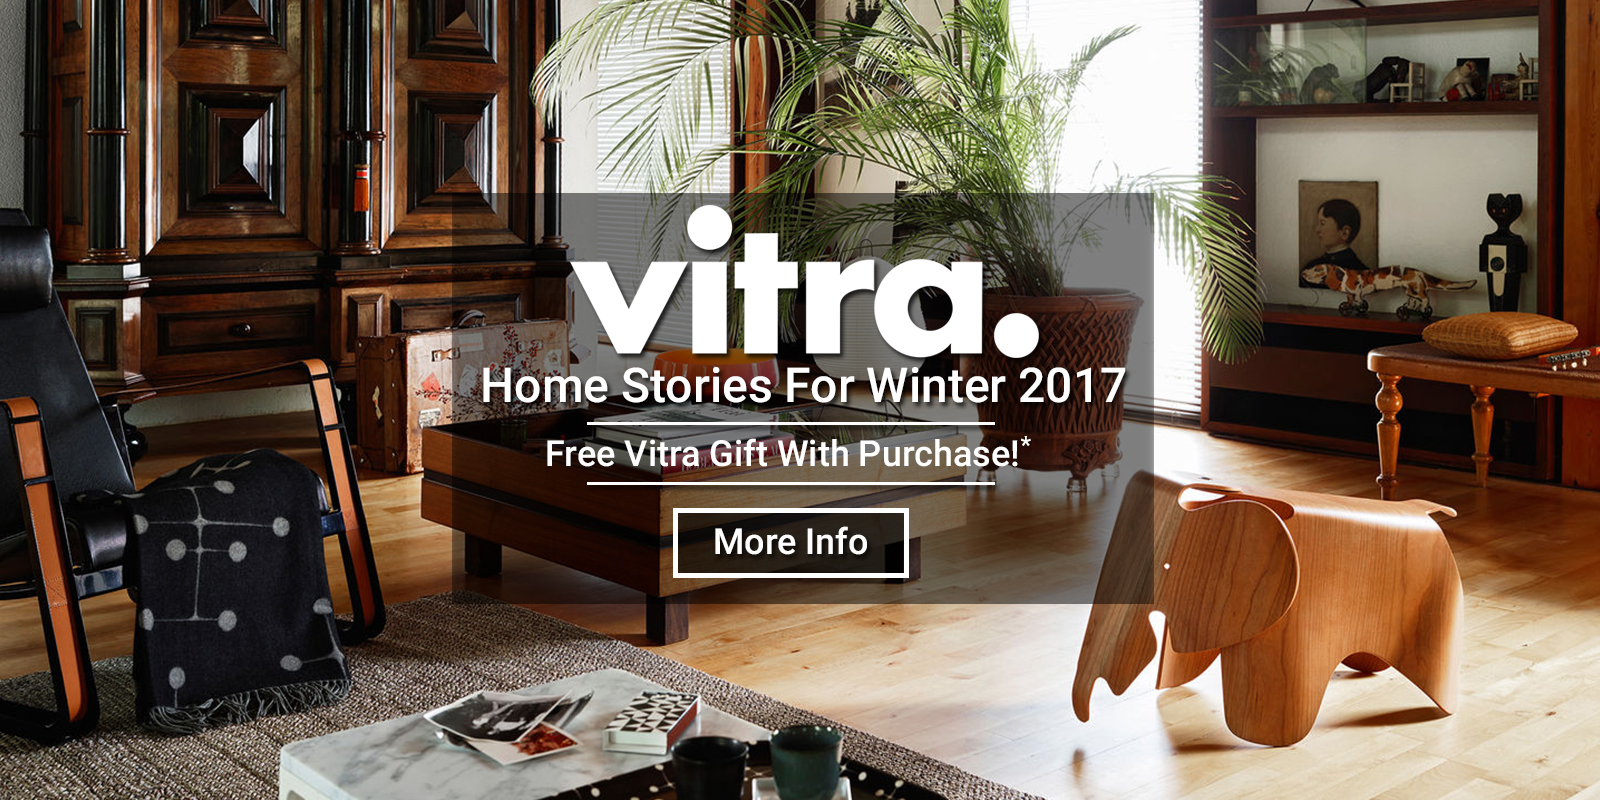 Vitra Home Stories For Winter 2017